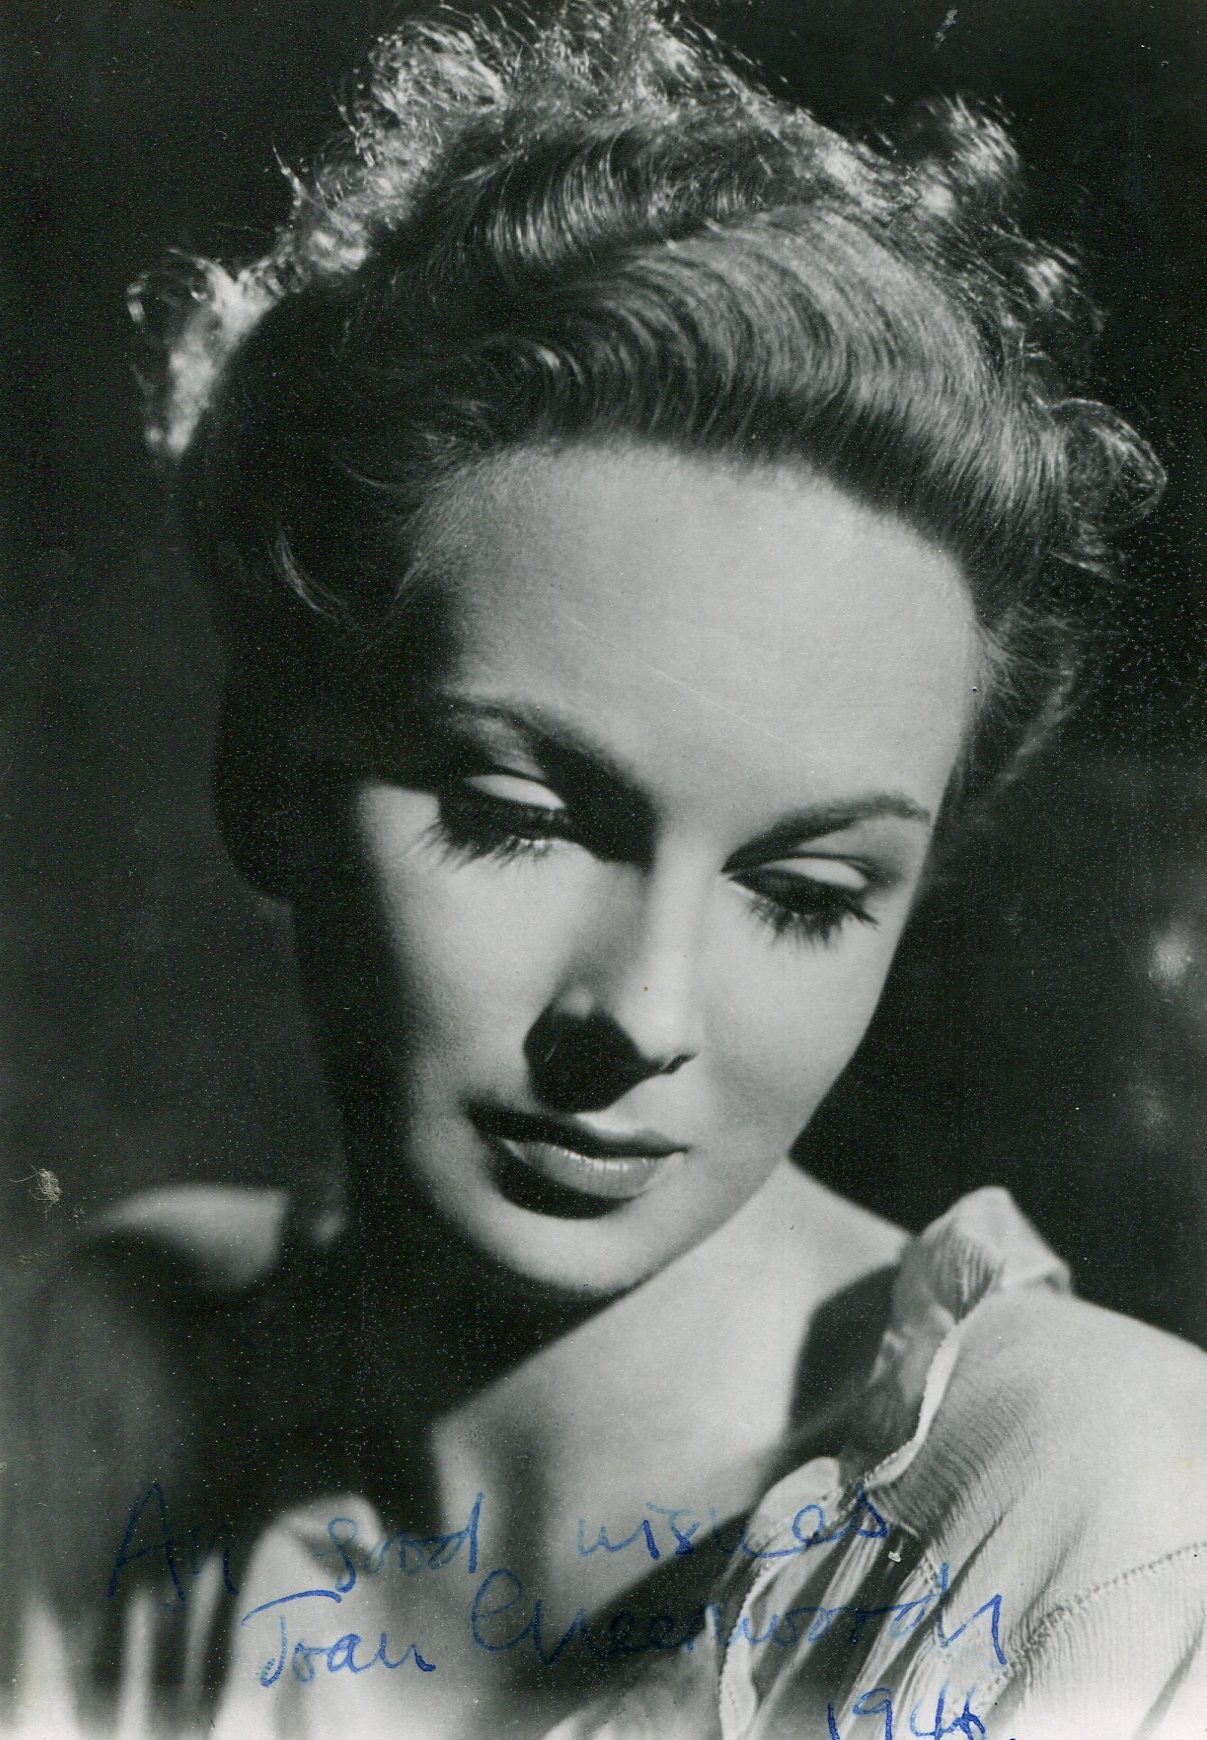 Boobs Joan Greenwood naked photo 2017